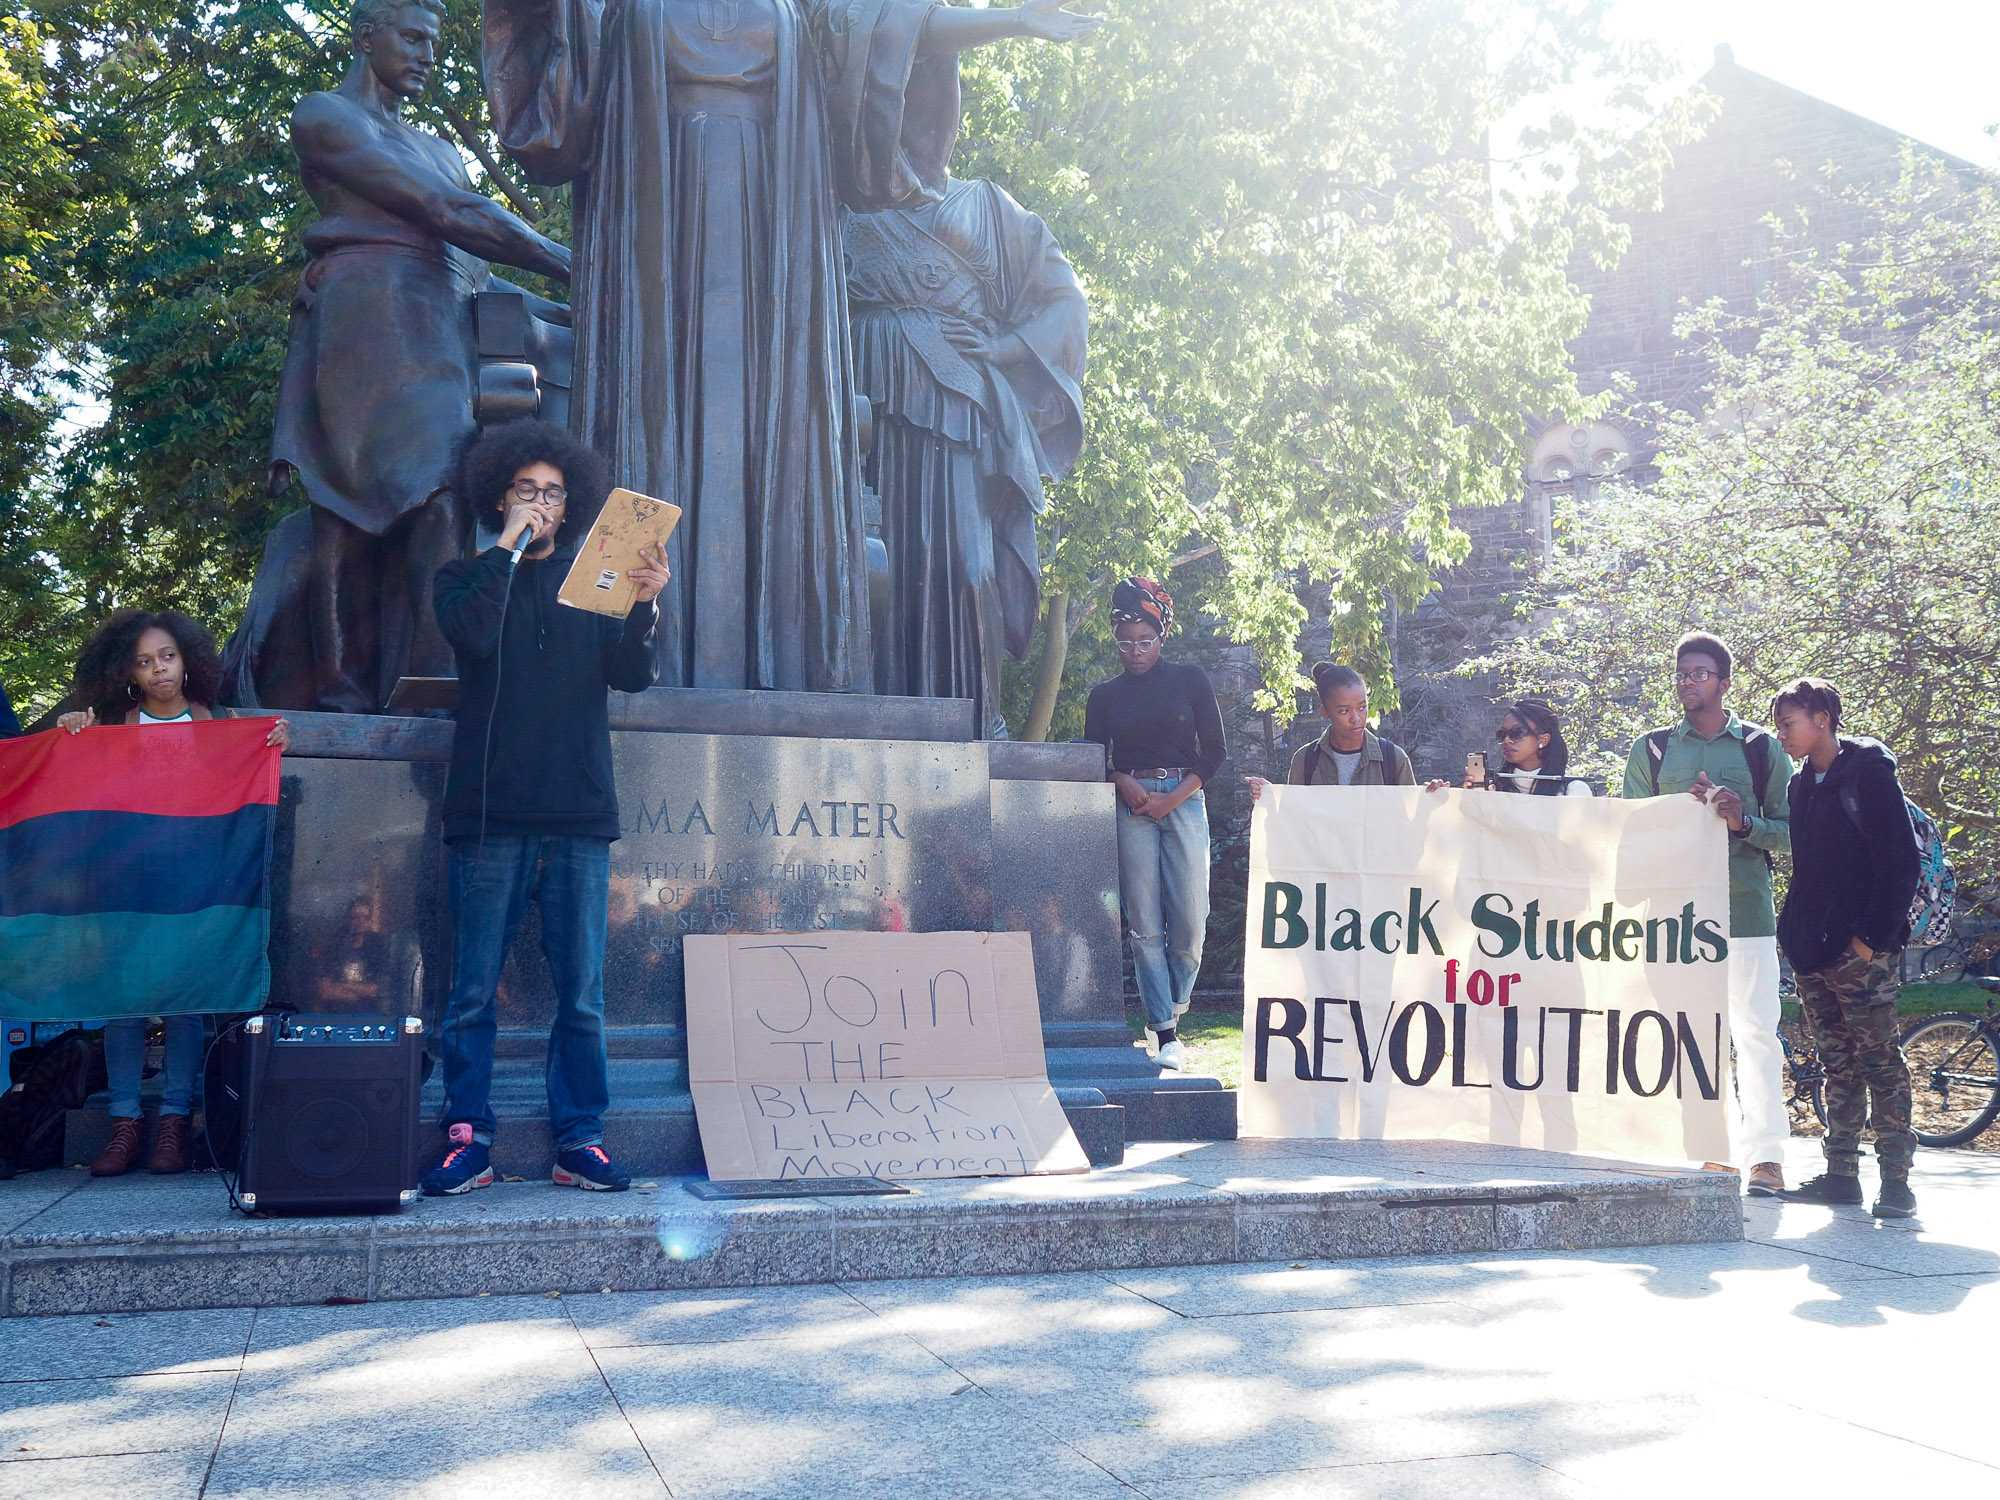 Sunny Ture, co-organizer of Black Students for Revolution, rallies students to march down Green Street on Monday.